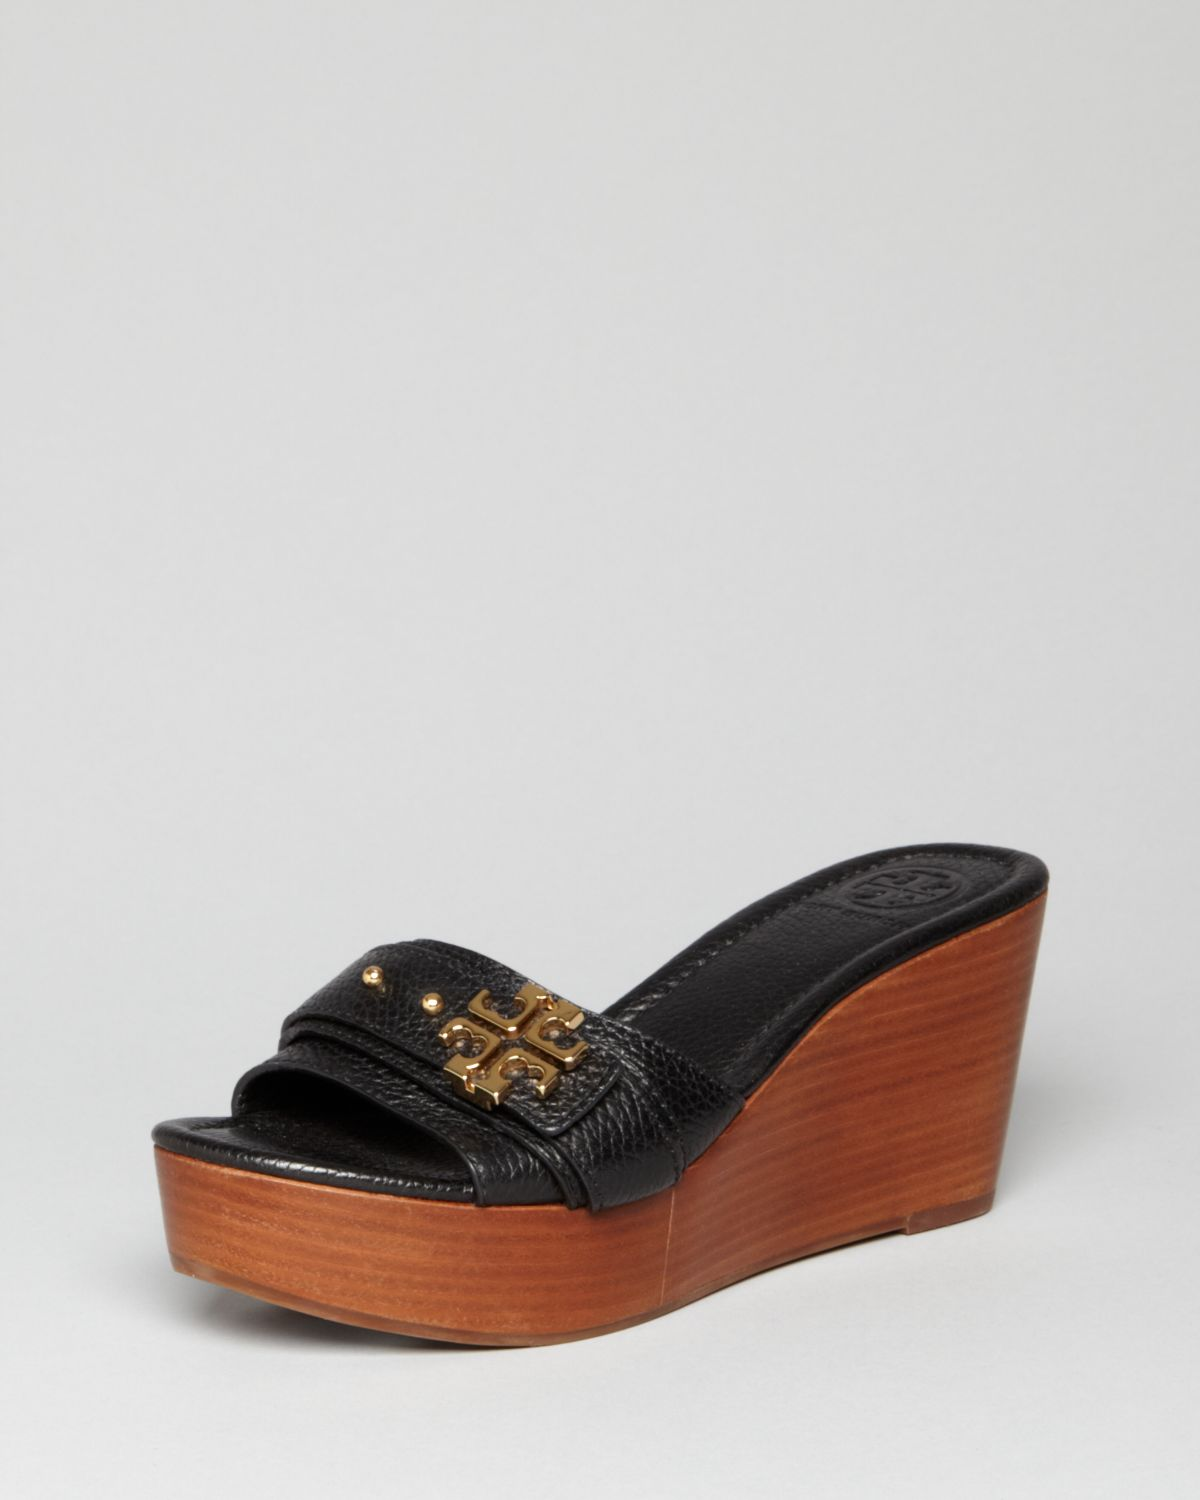 Tory Burch Platform Wedge Sandals Elina In Black Lyst